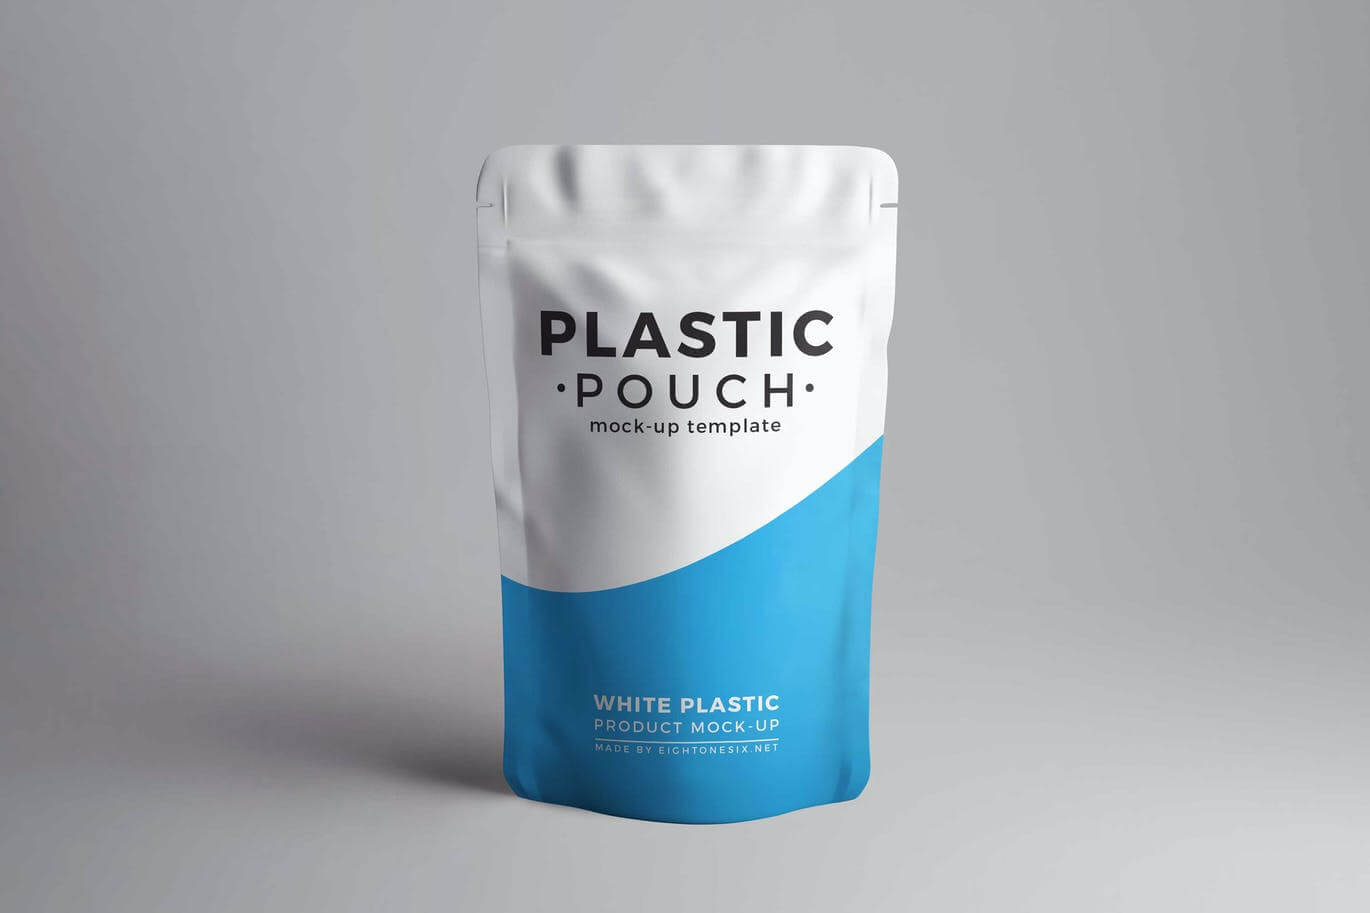 Plastic Pouch Product Mock-Up (2)